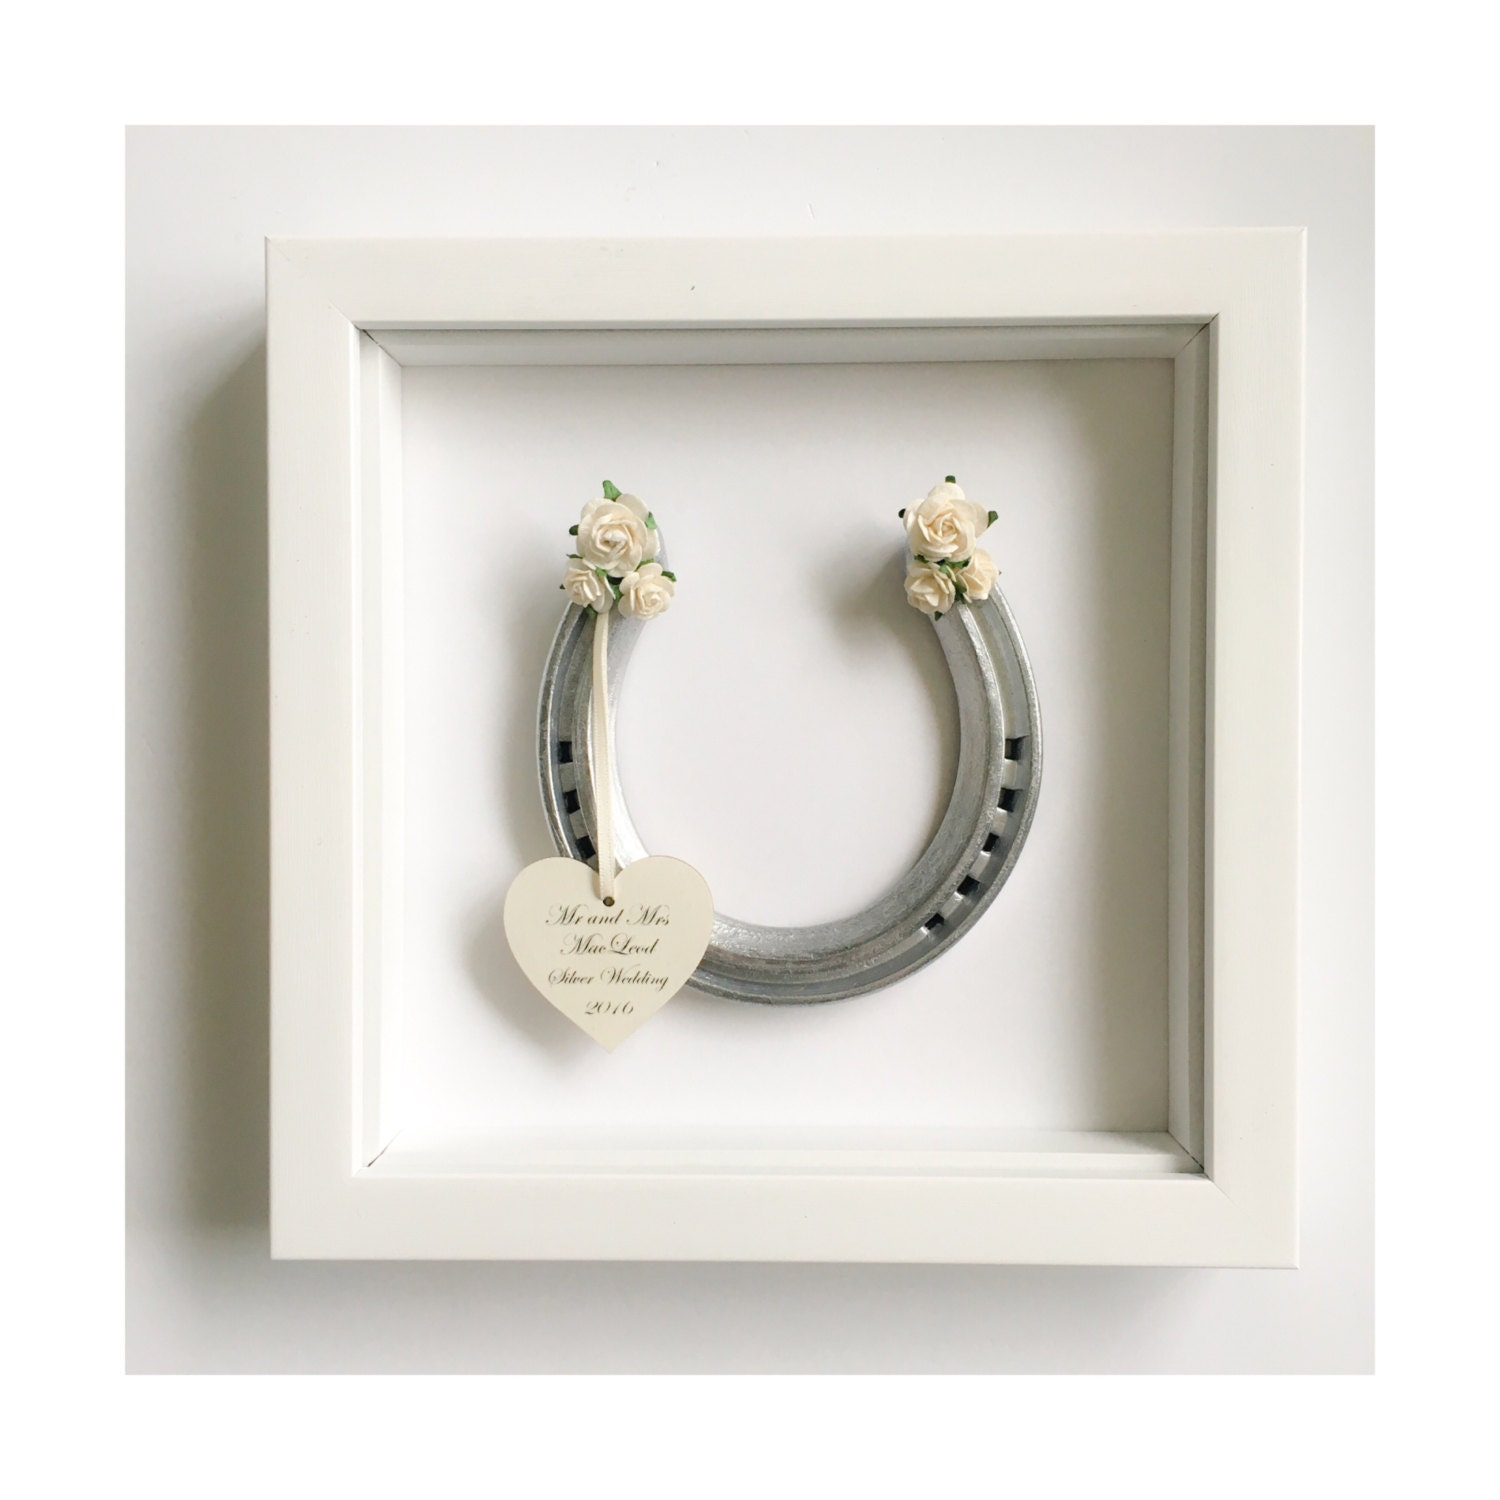 Horseshoe Heart Picture Frame